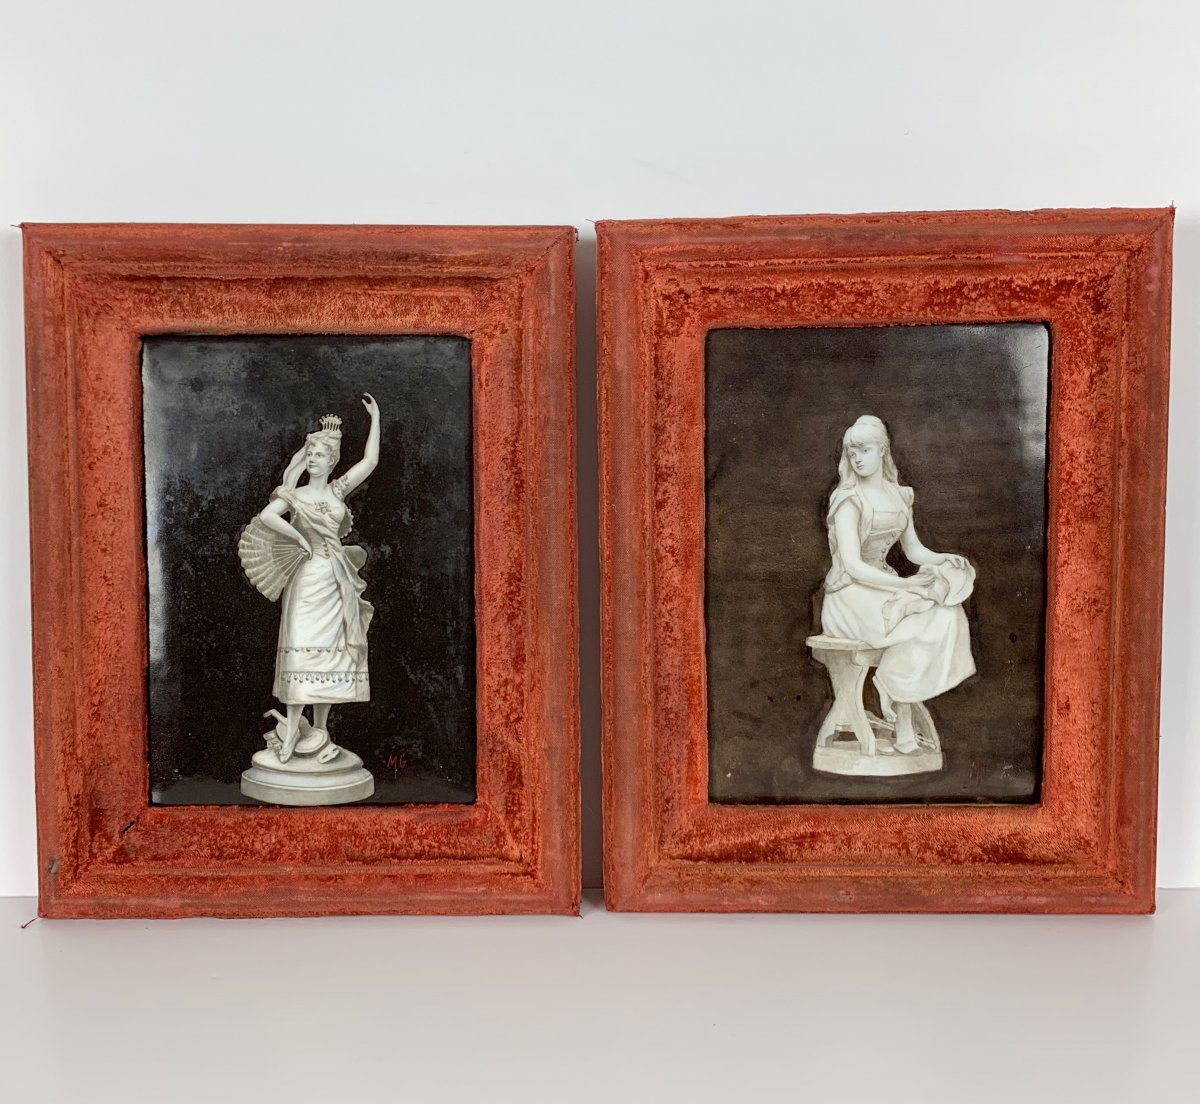 Pair Of Paintings On Porcelain Plates